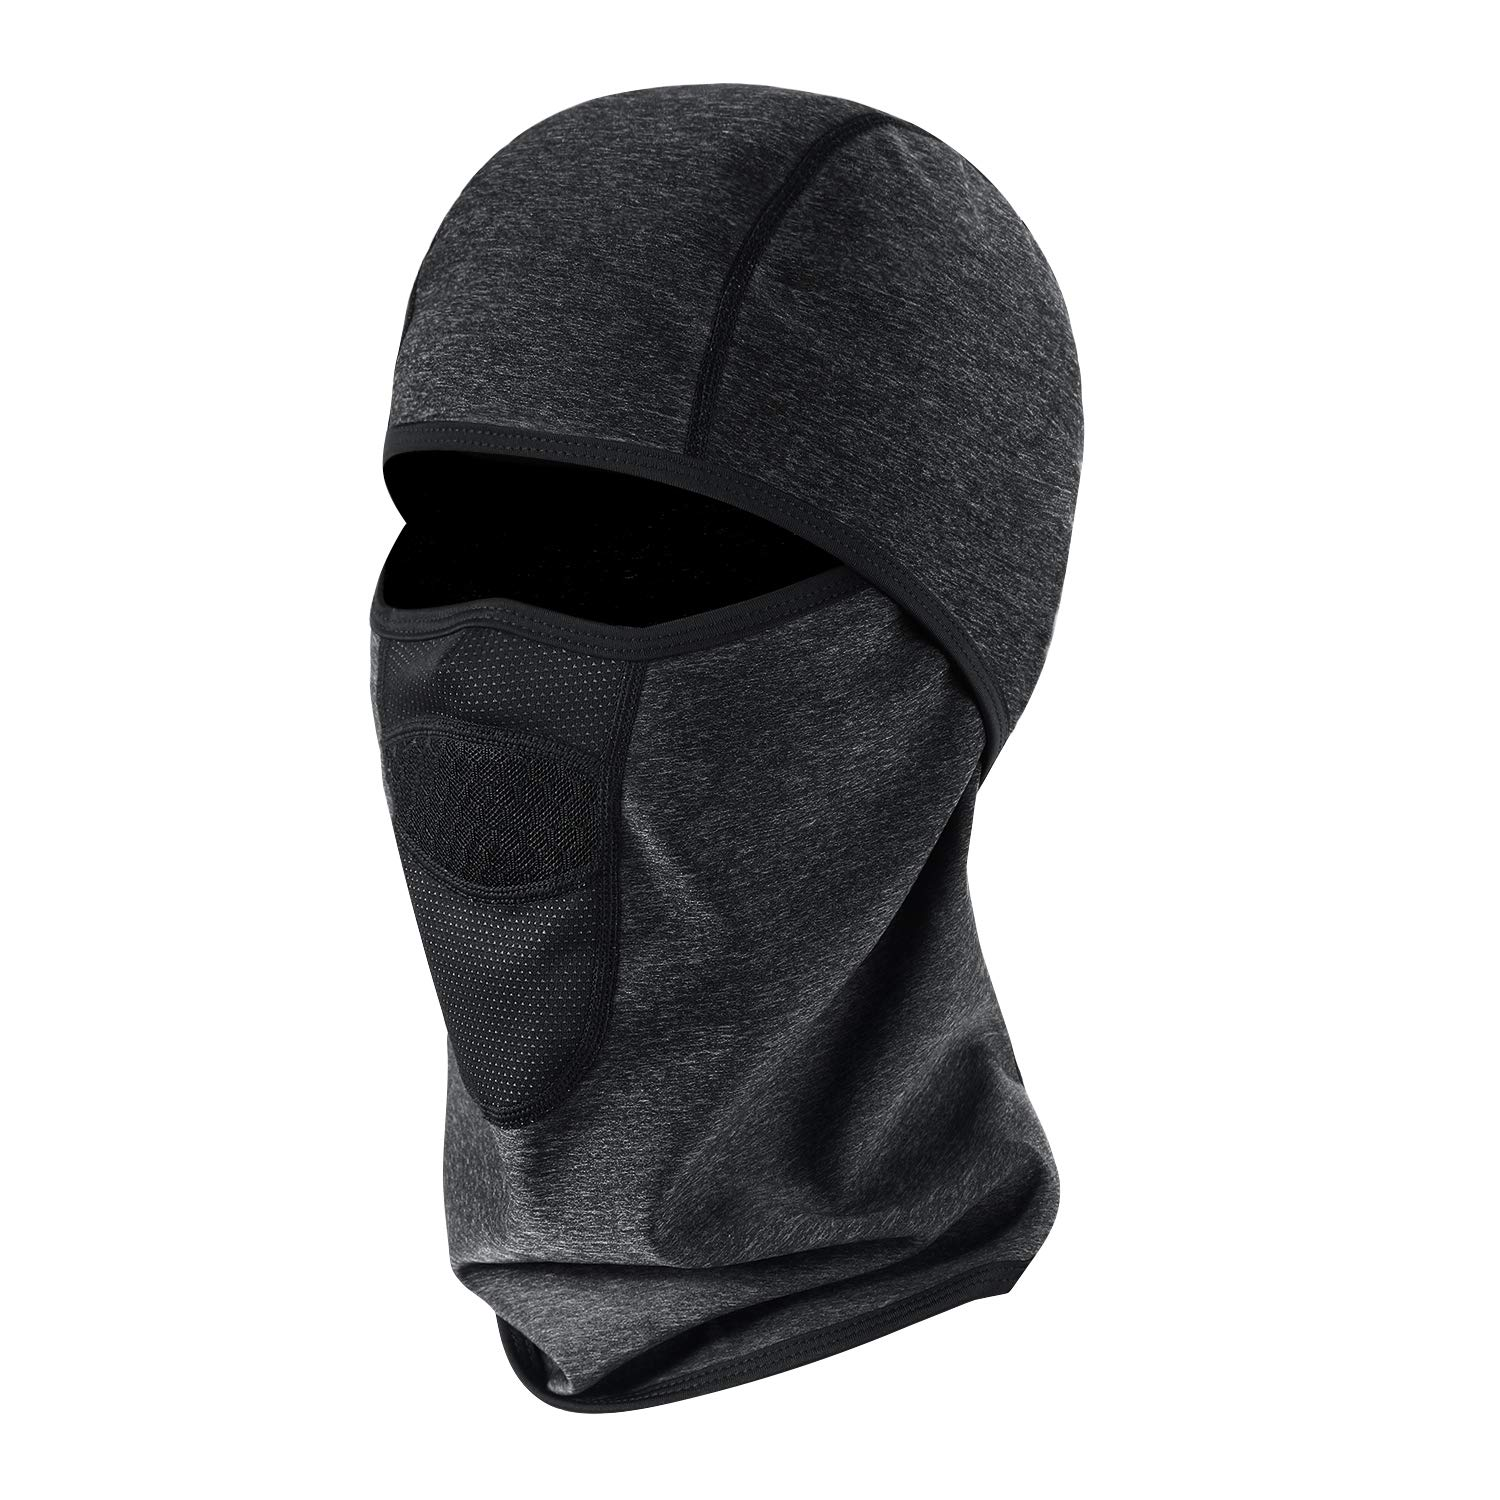 Aegend Balaclava Windproof, Ski Face Mask, Winter Motorcycle Neck Warmer Tactical Balaclava Hood Polyester Fleece for Women Men Youth Snowboard Cycling Hat Outdoors Helmet Liner Mask,1 Piece Black